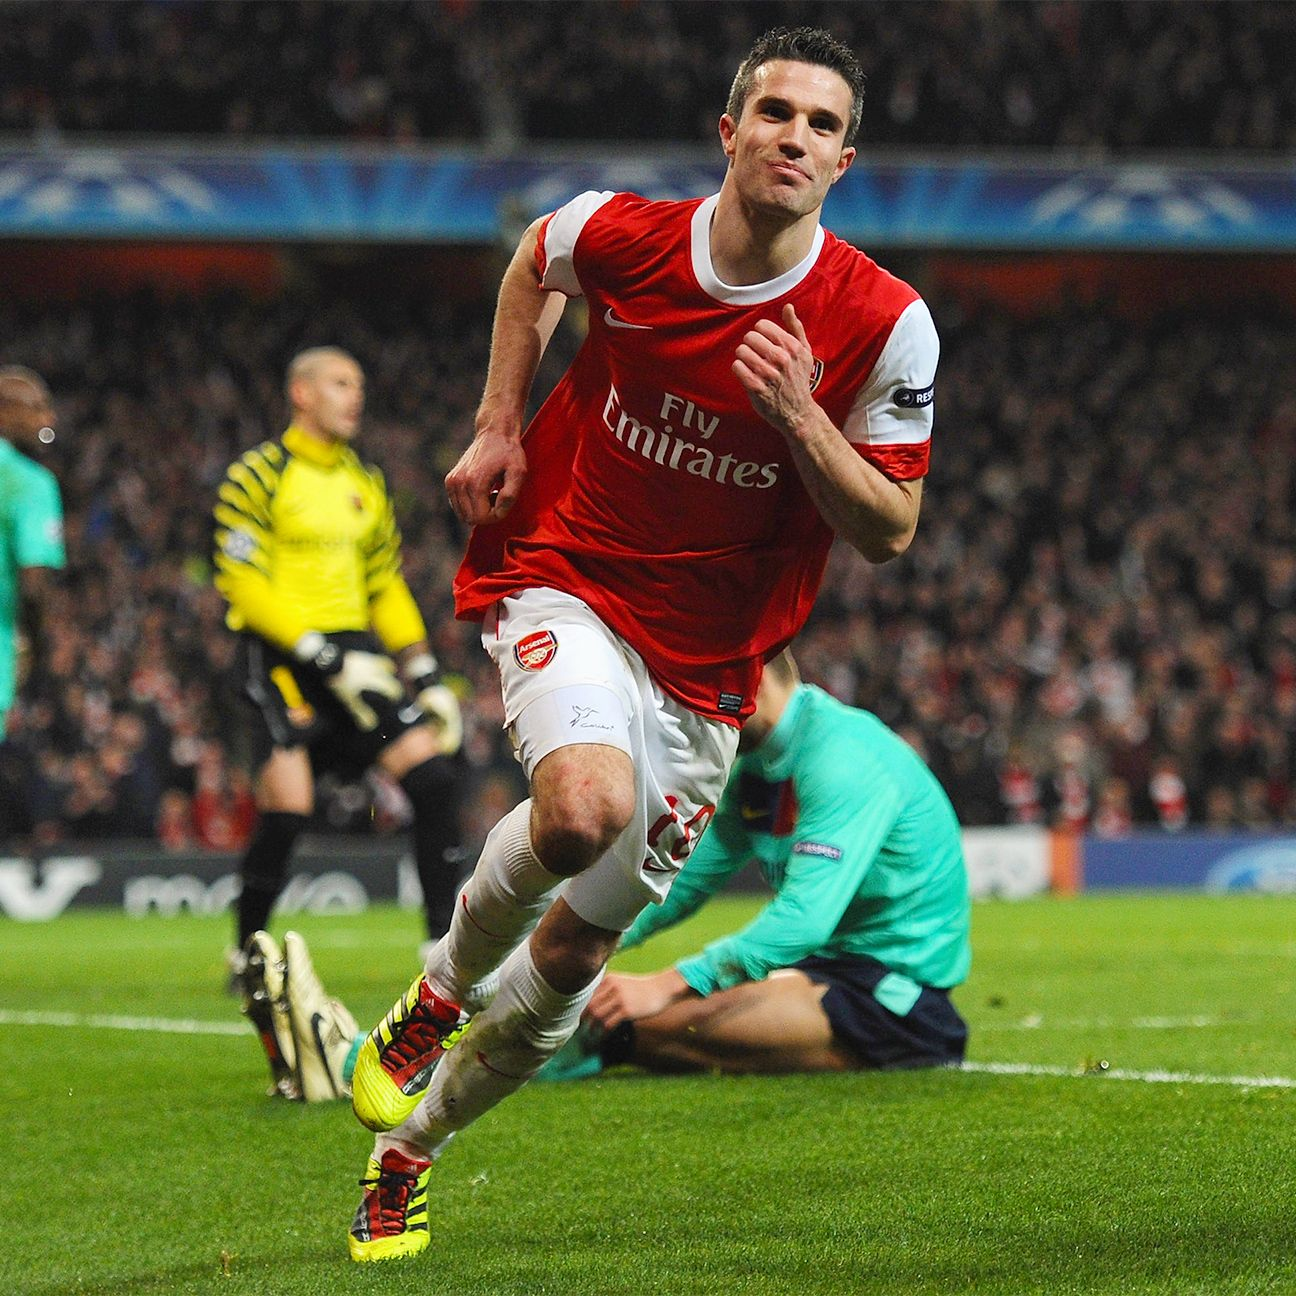 Wenger: Alexis' Arsenal exit won't upset fans like Van Persie's